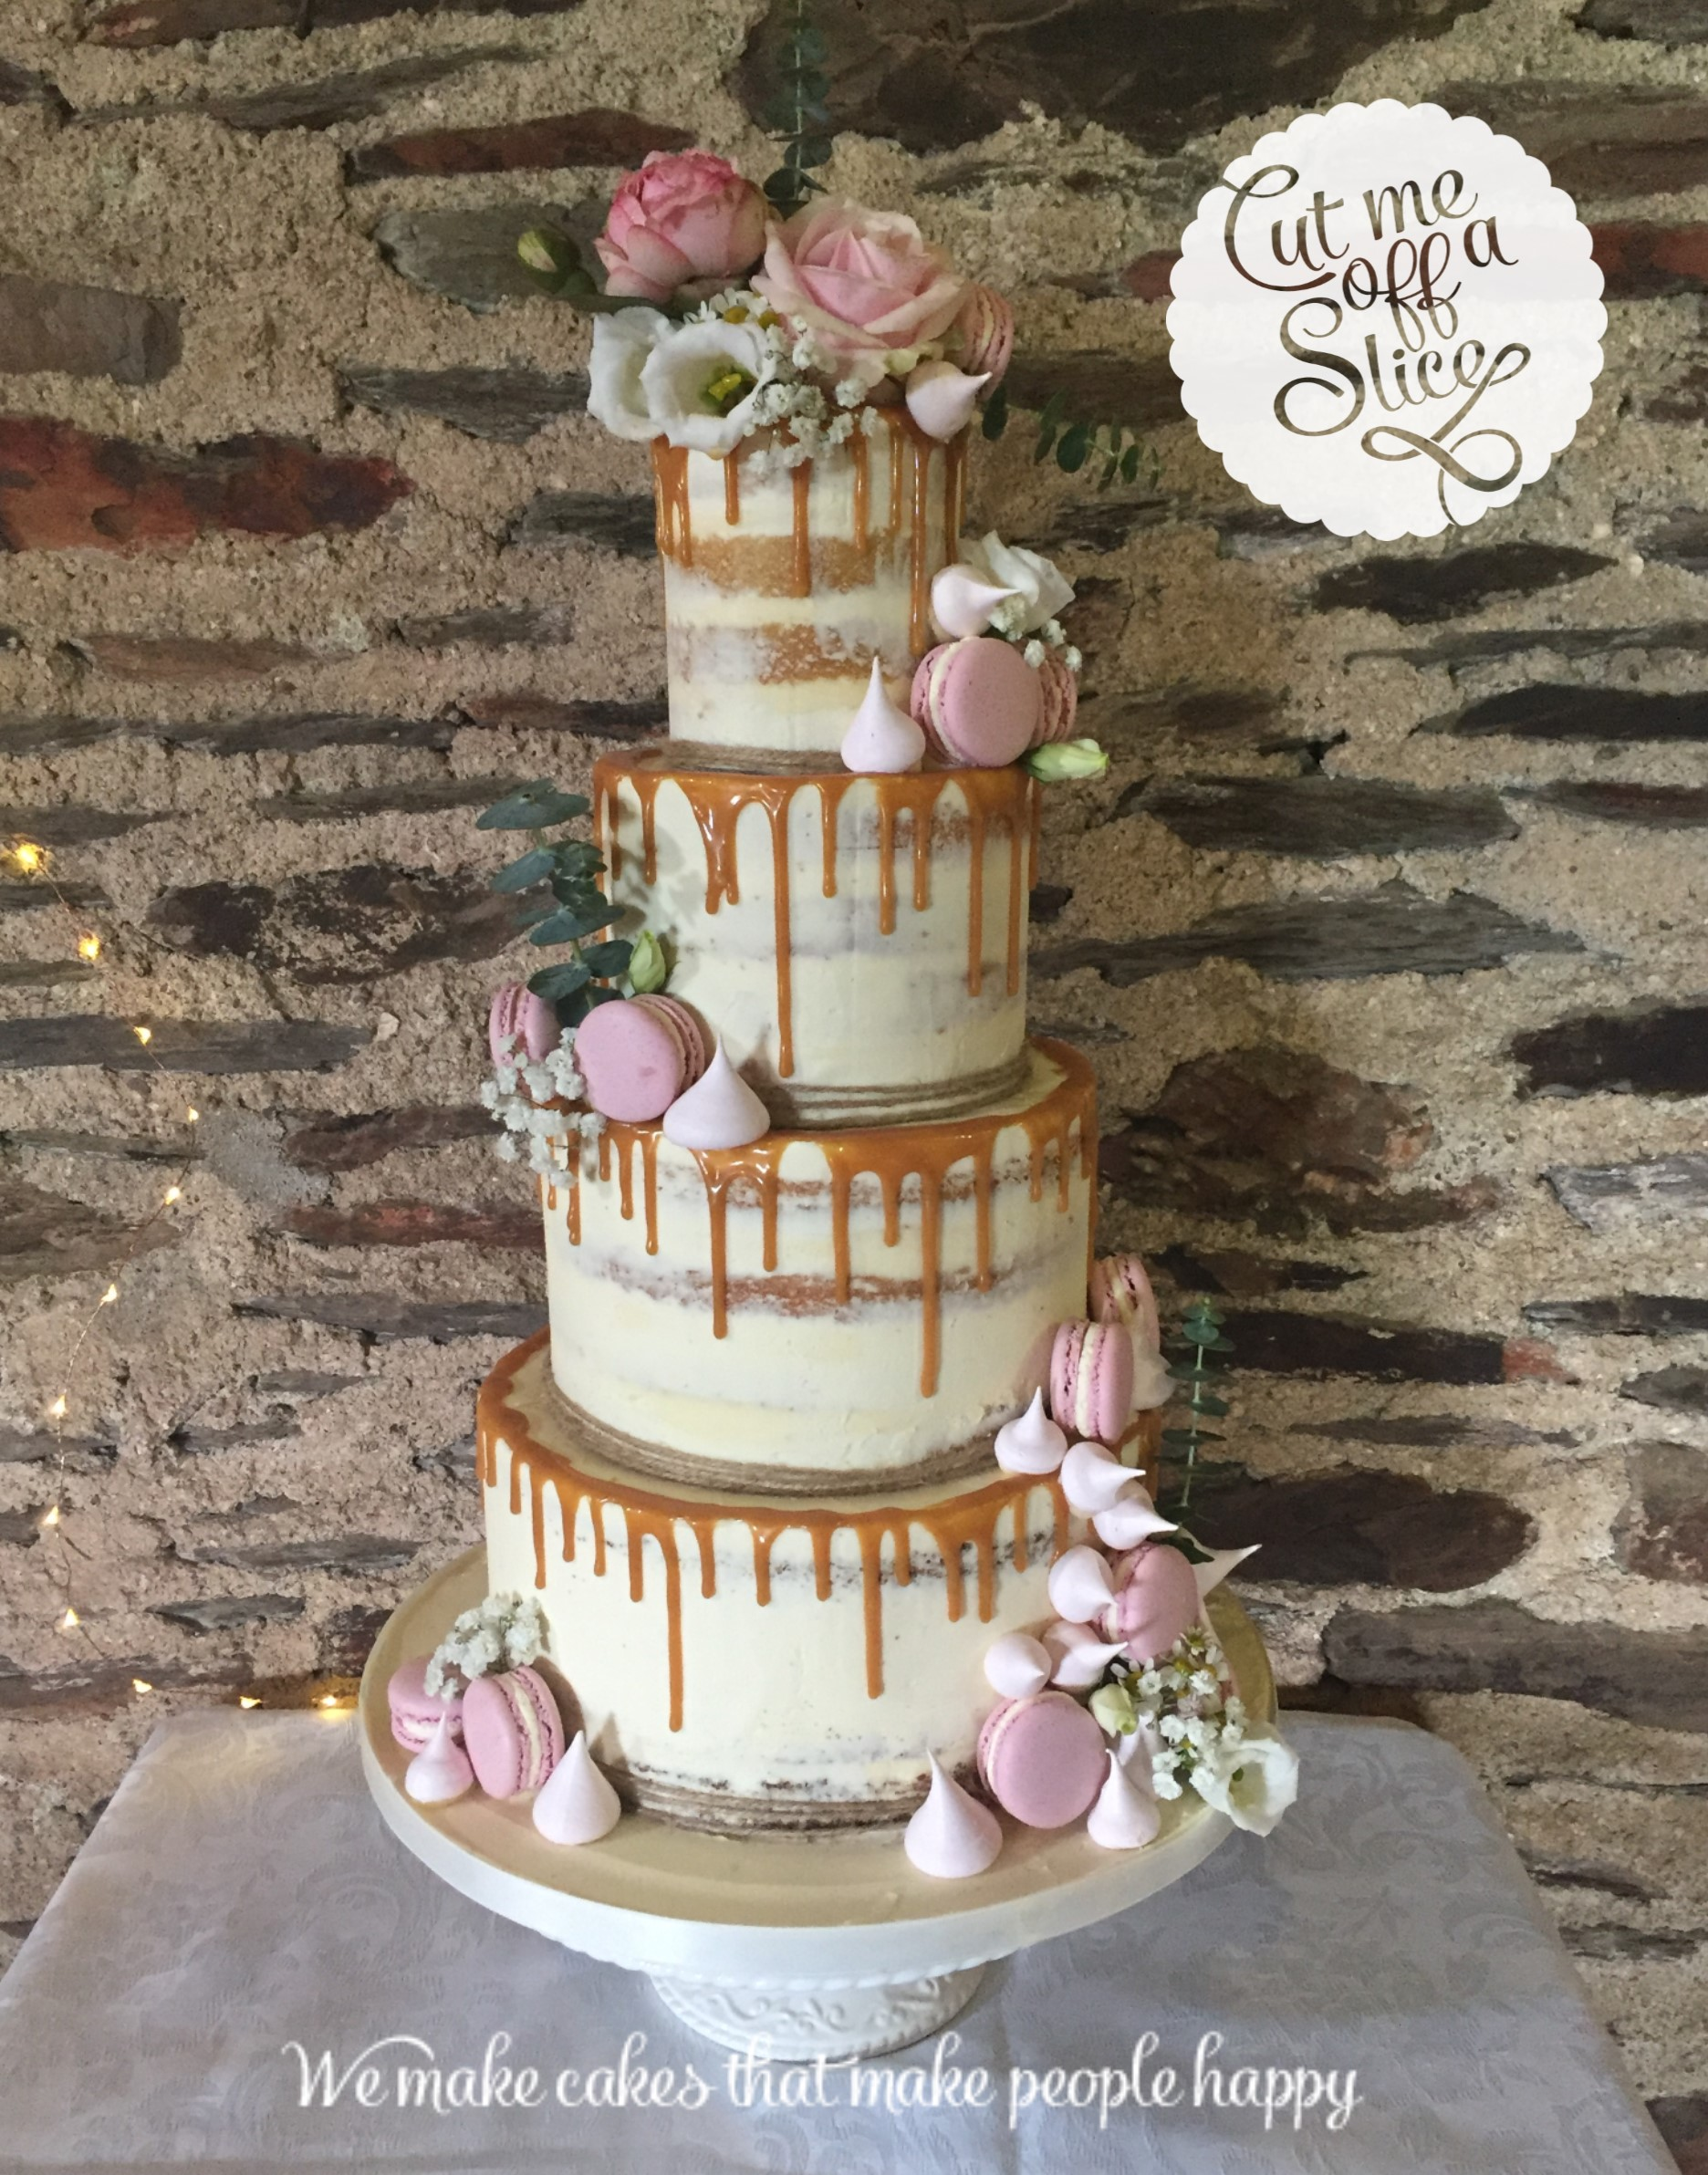 How To Cut A Wedding Cake Square